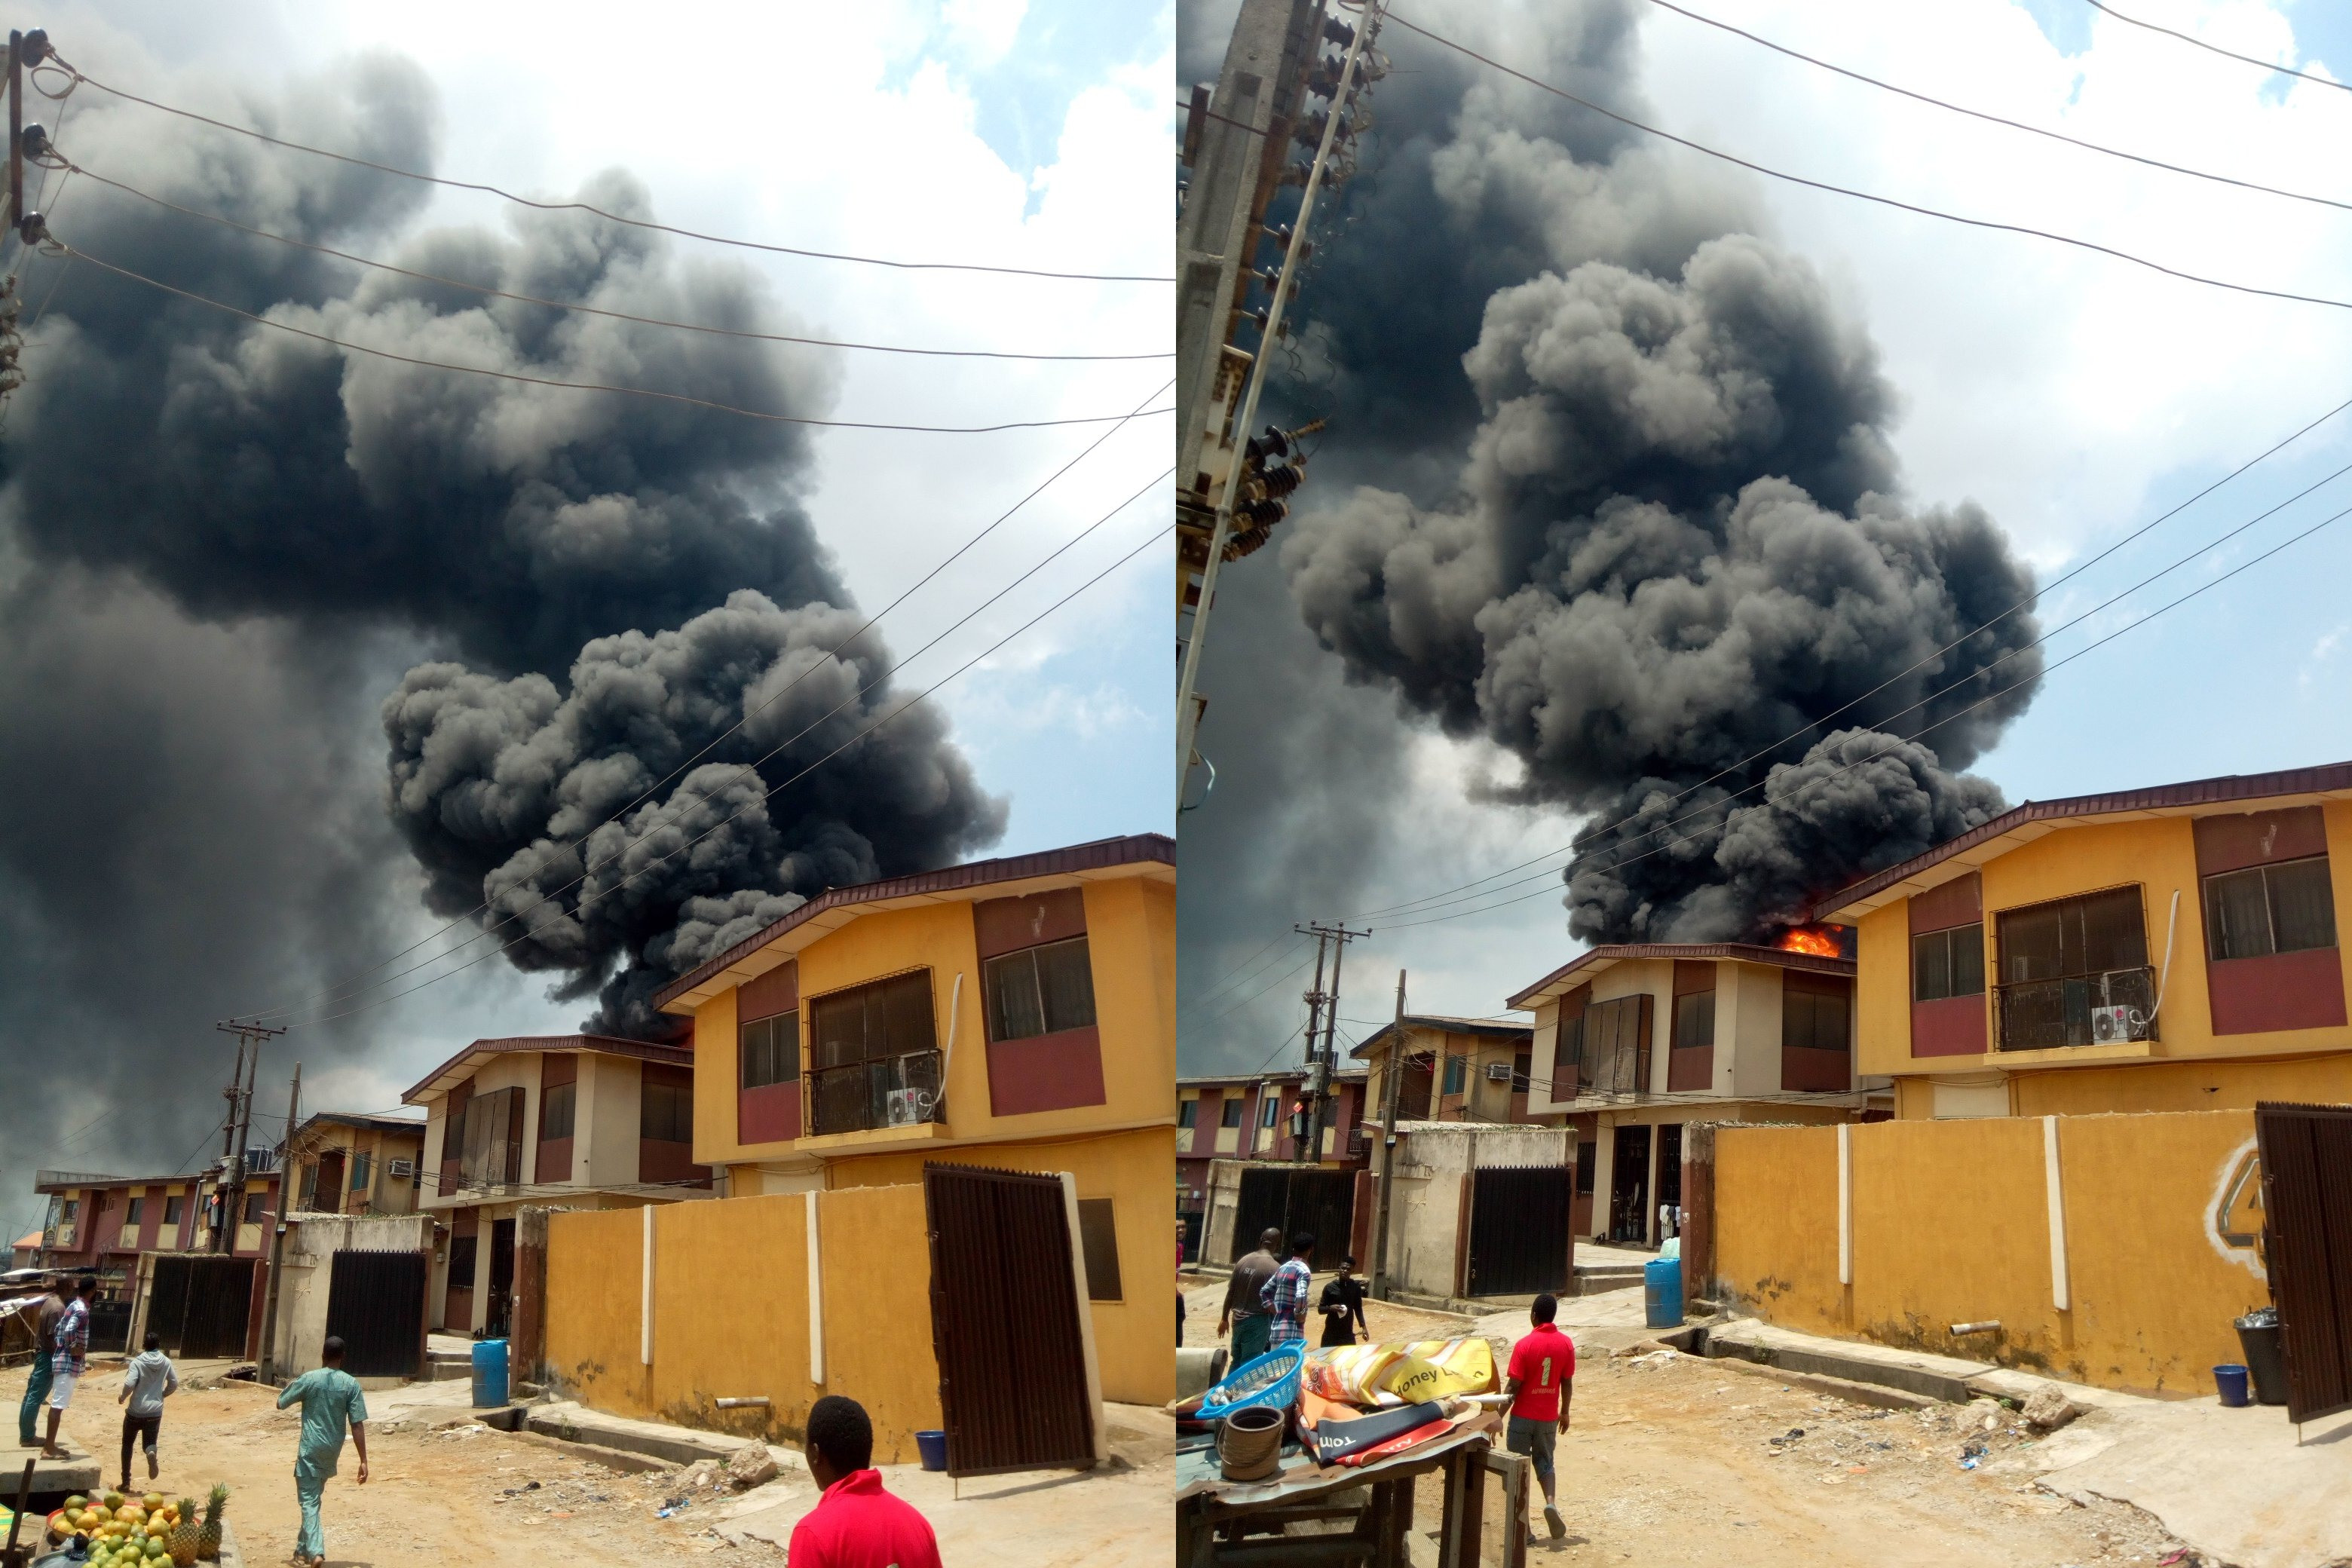 latest news: NNPC petrol station in Lagos gutted by fire (photos)